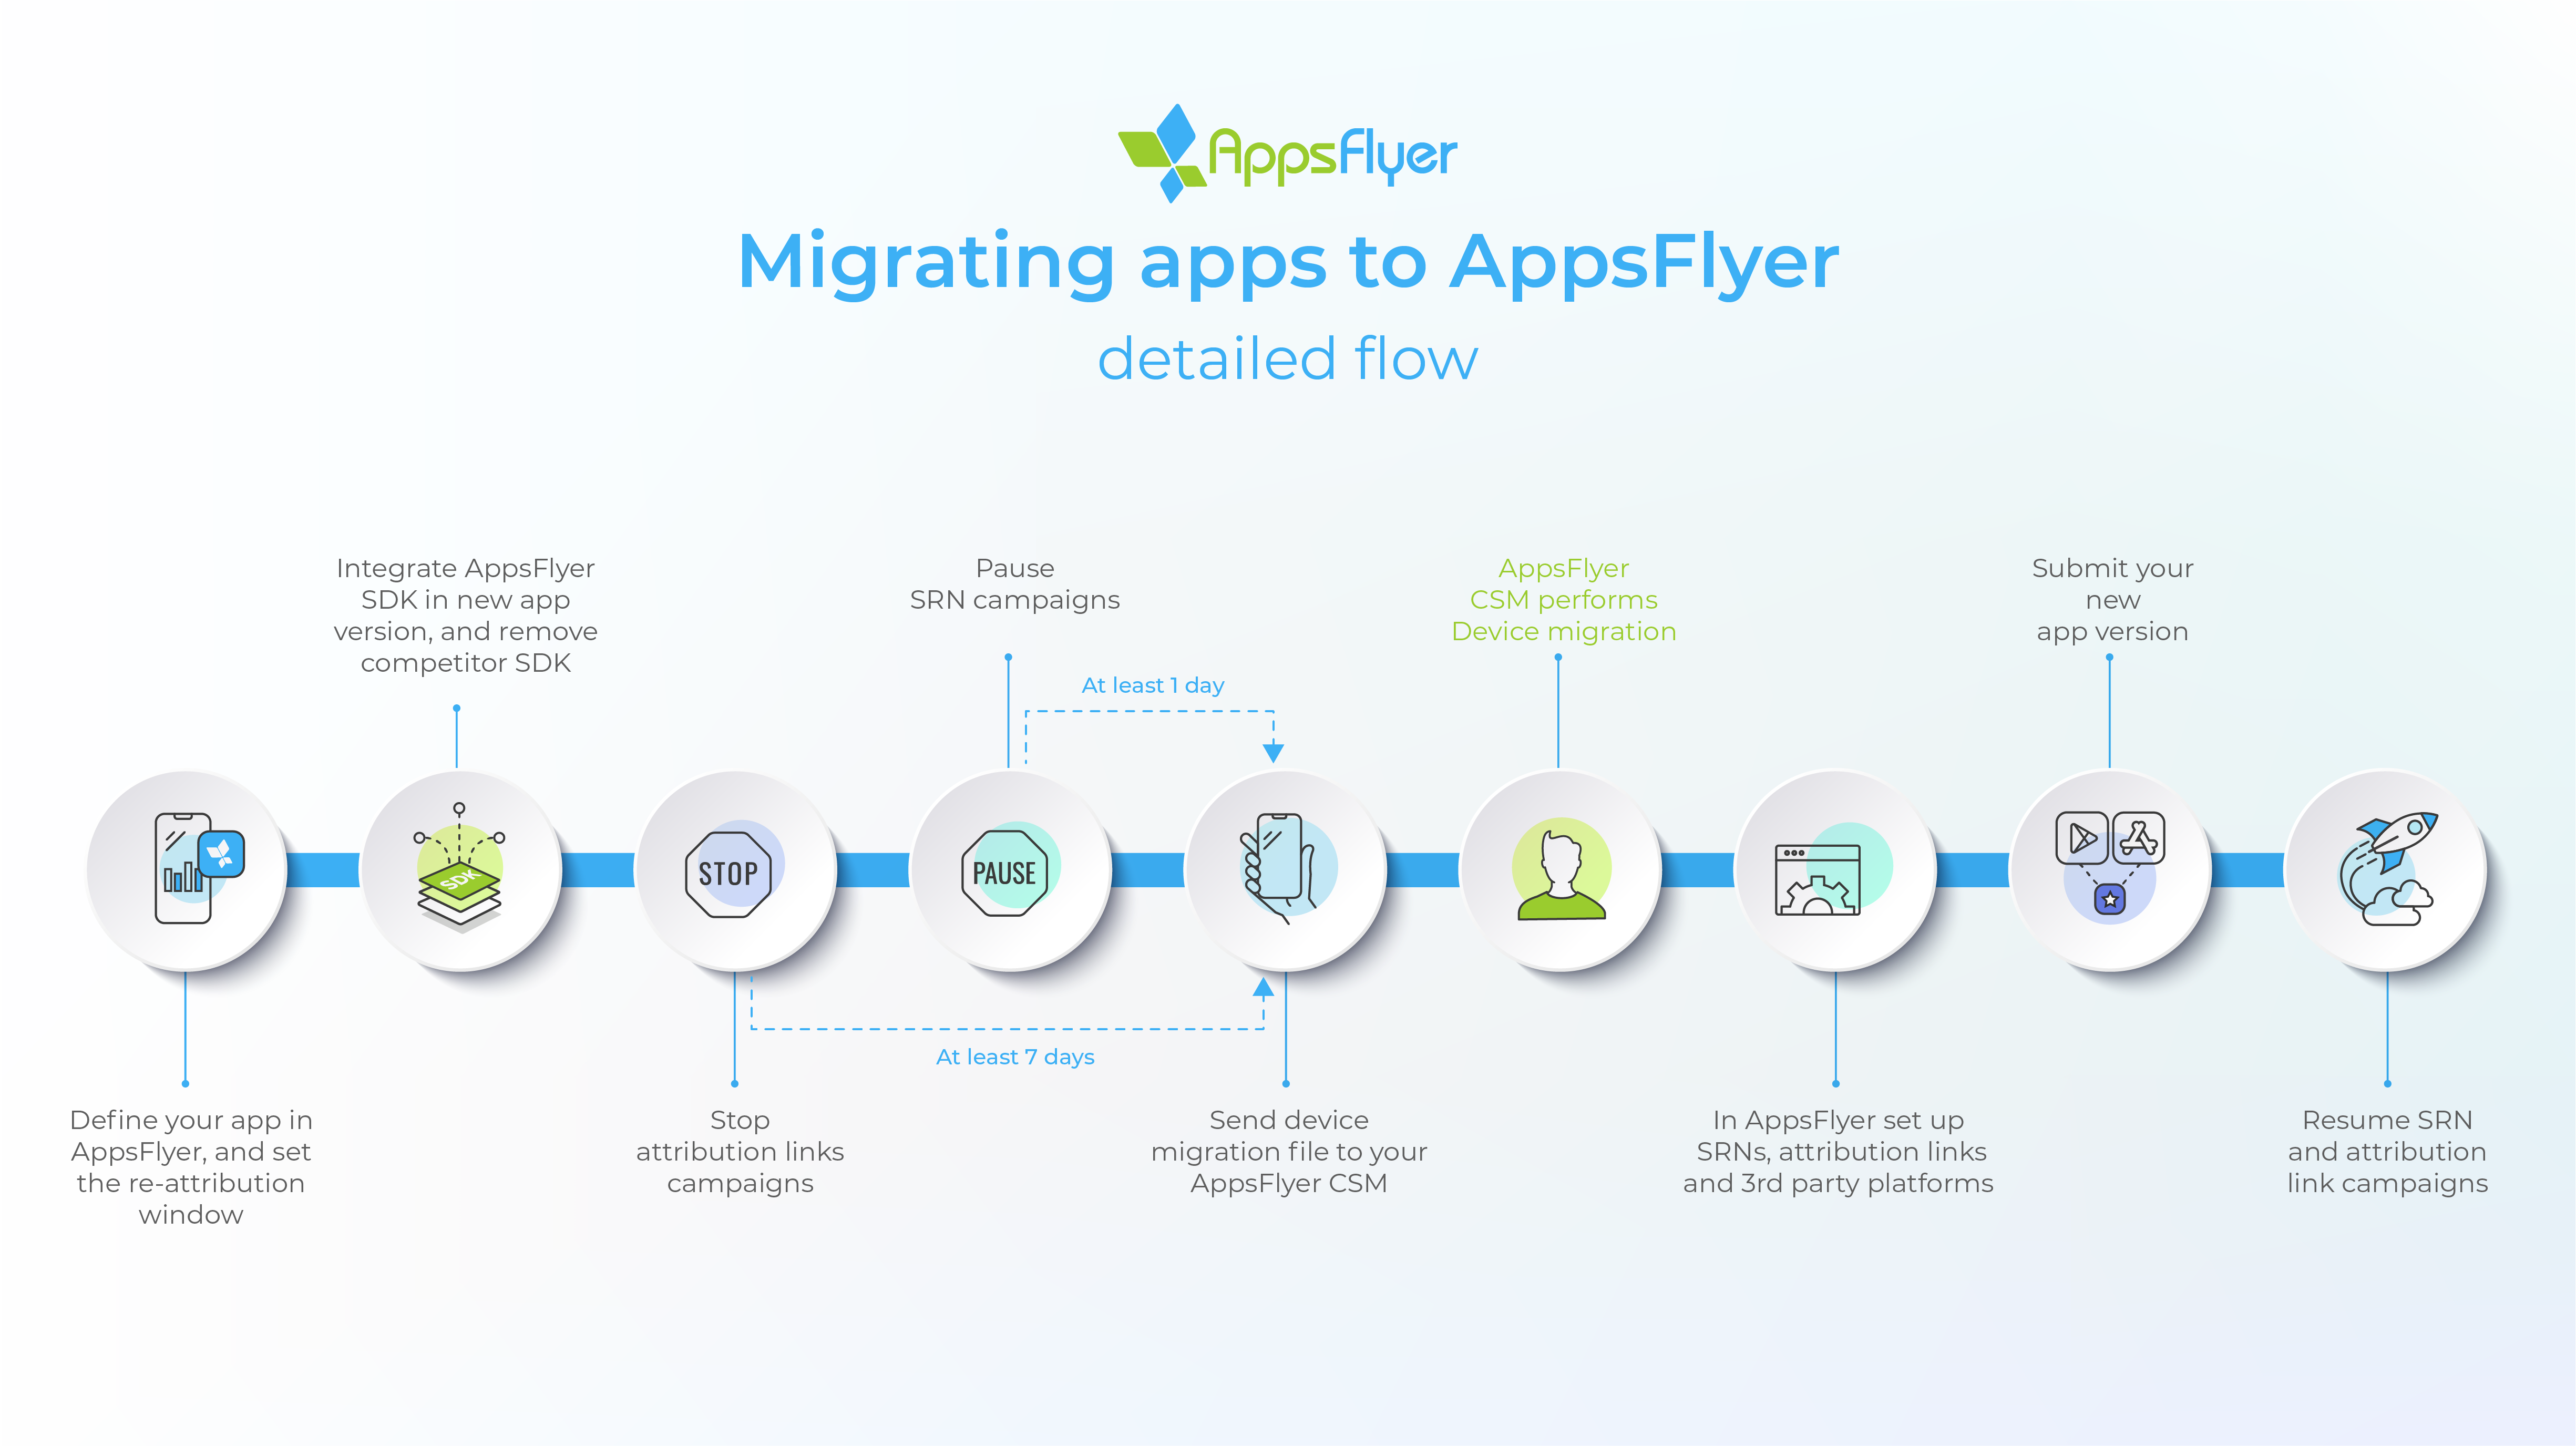 App_migration_detailed_flow.png